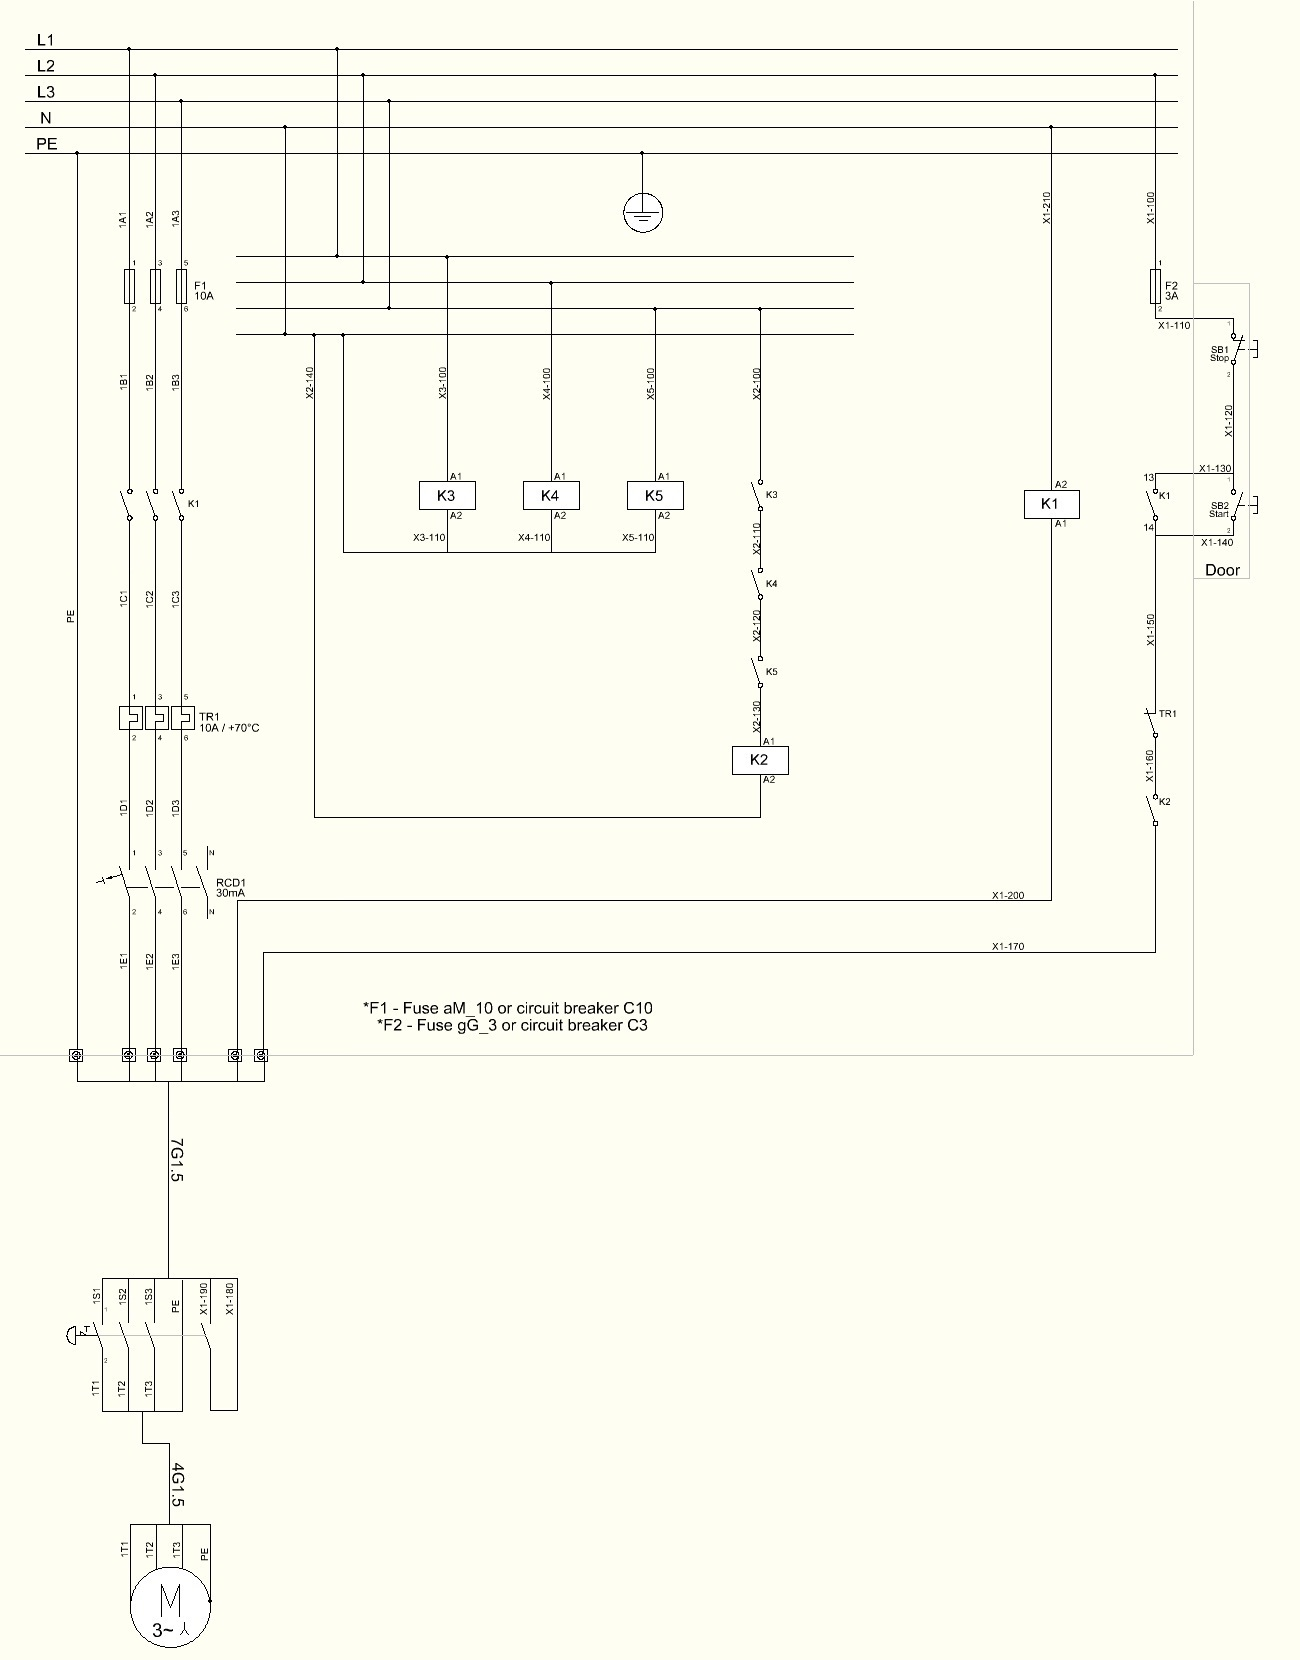 August 2011 Wiring Diagram Wire Data Schema 110 Light Switch File Sandblaster Wikimedia Commons Rh Org 3 Way